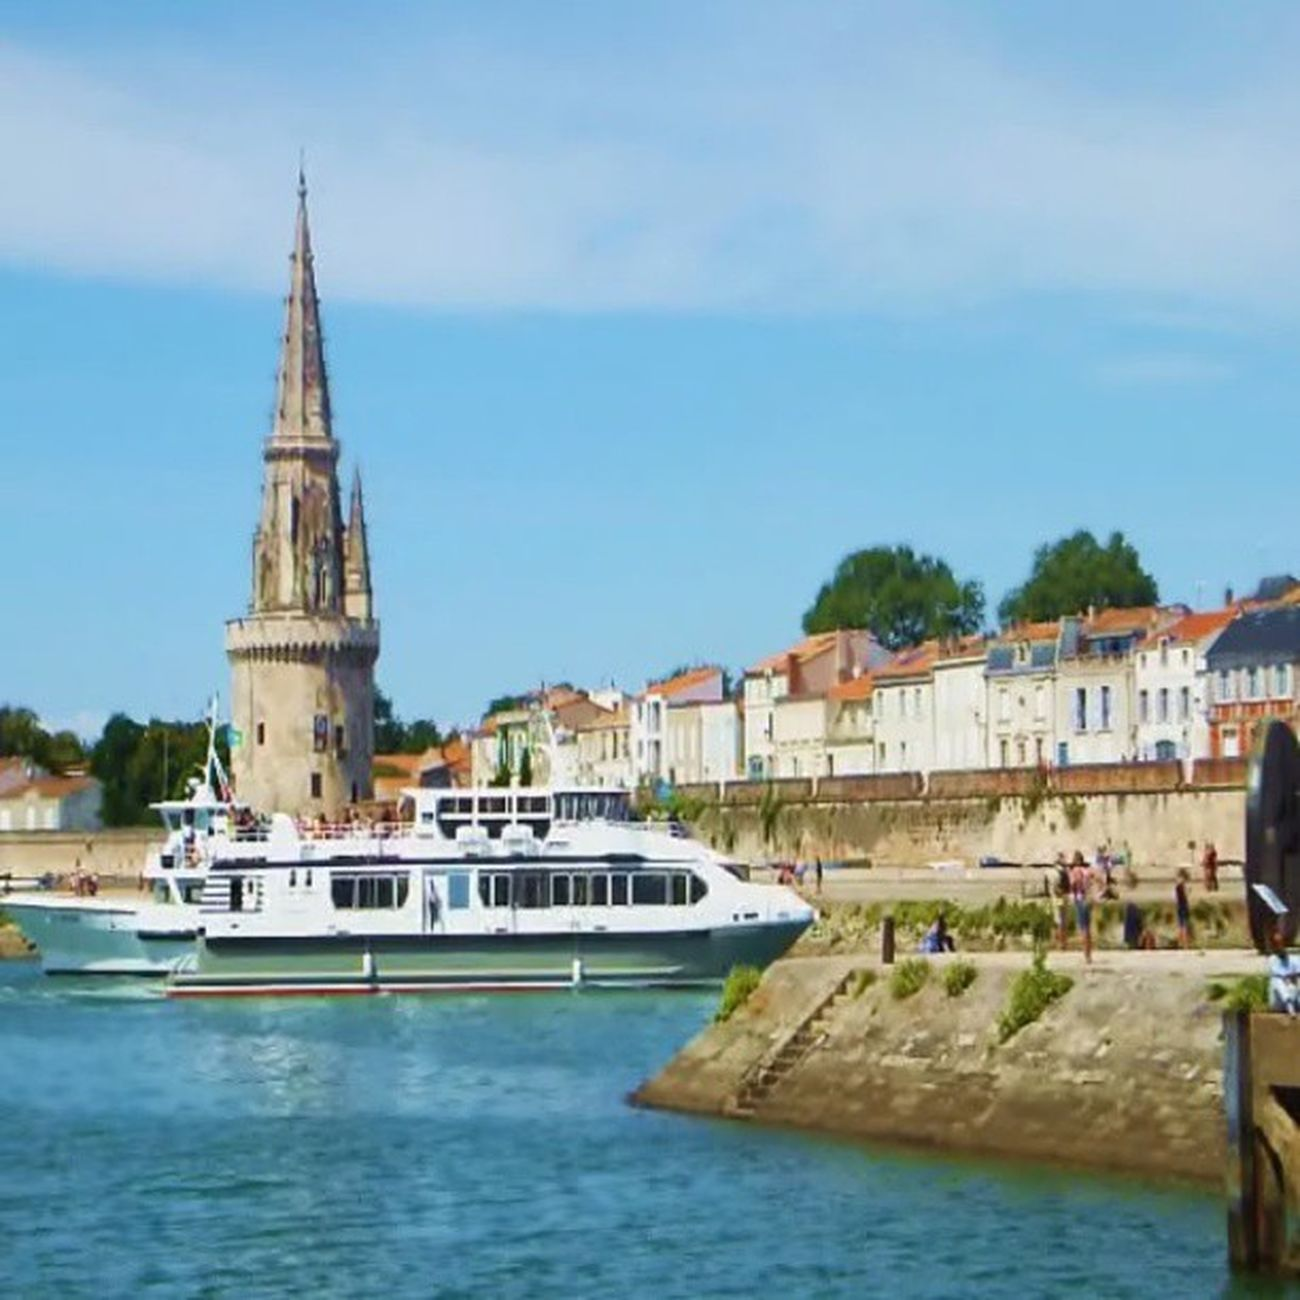 Port de la rochelle #igersfrance #igersfrancevideo Tribegram_video Perfectvideo Video Videooftheday Larochelle Myfirstvideo Videoclip Videogramoftheday Igersfrance Insta_pick_video Videoinstagram Gi_video Instagramvideo Hubvideo Videogram Global_views_videoshot Igvideo Instavideo Jj_creative Poitoucharentes Igersfrancevideo Worldvideos Insta_globalvideo